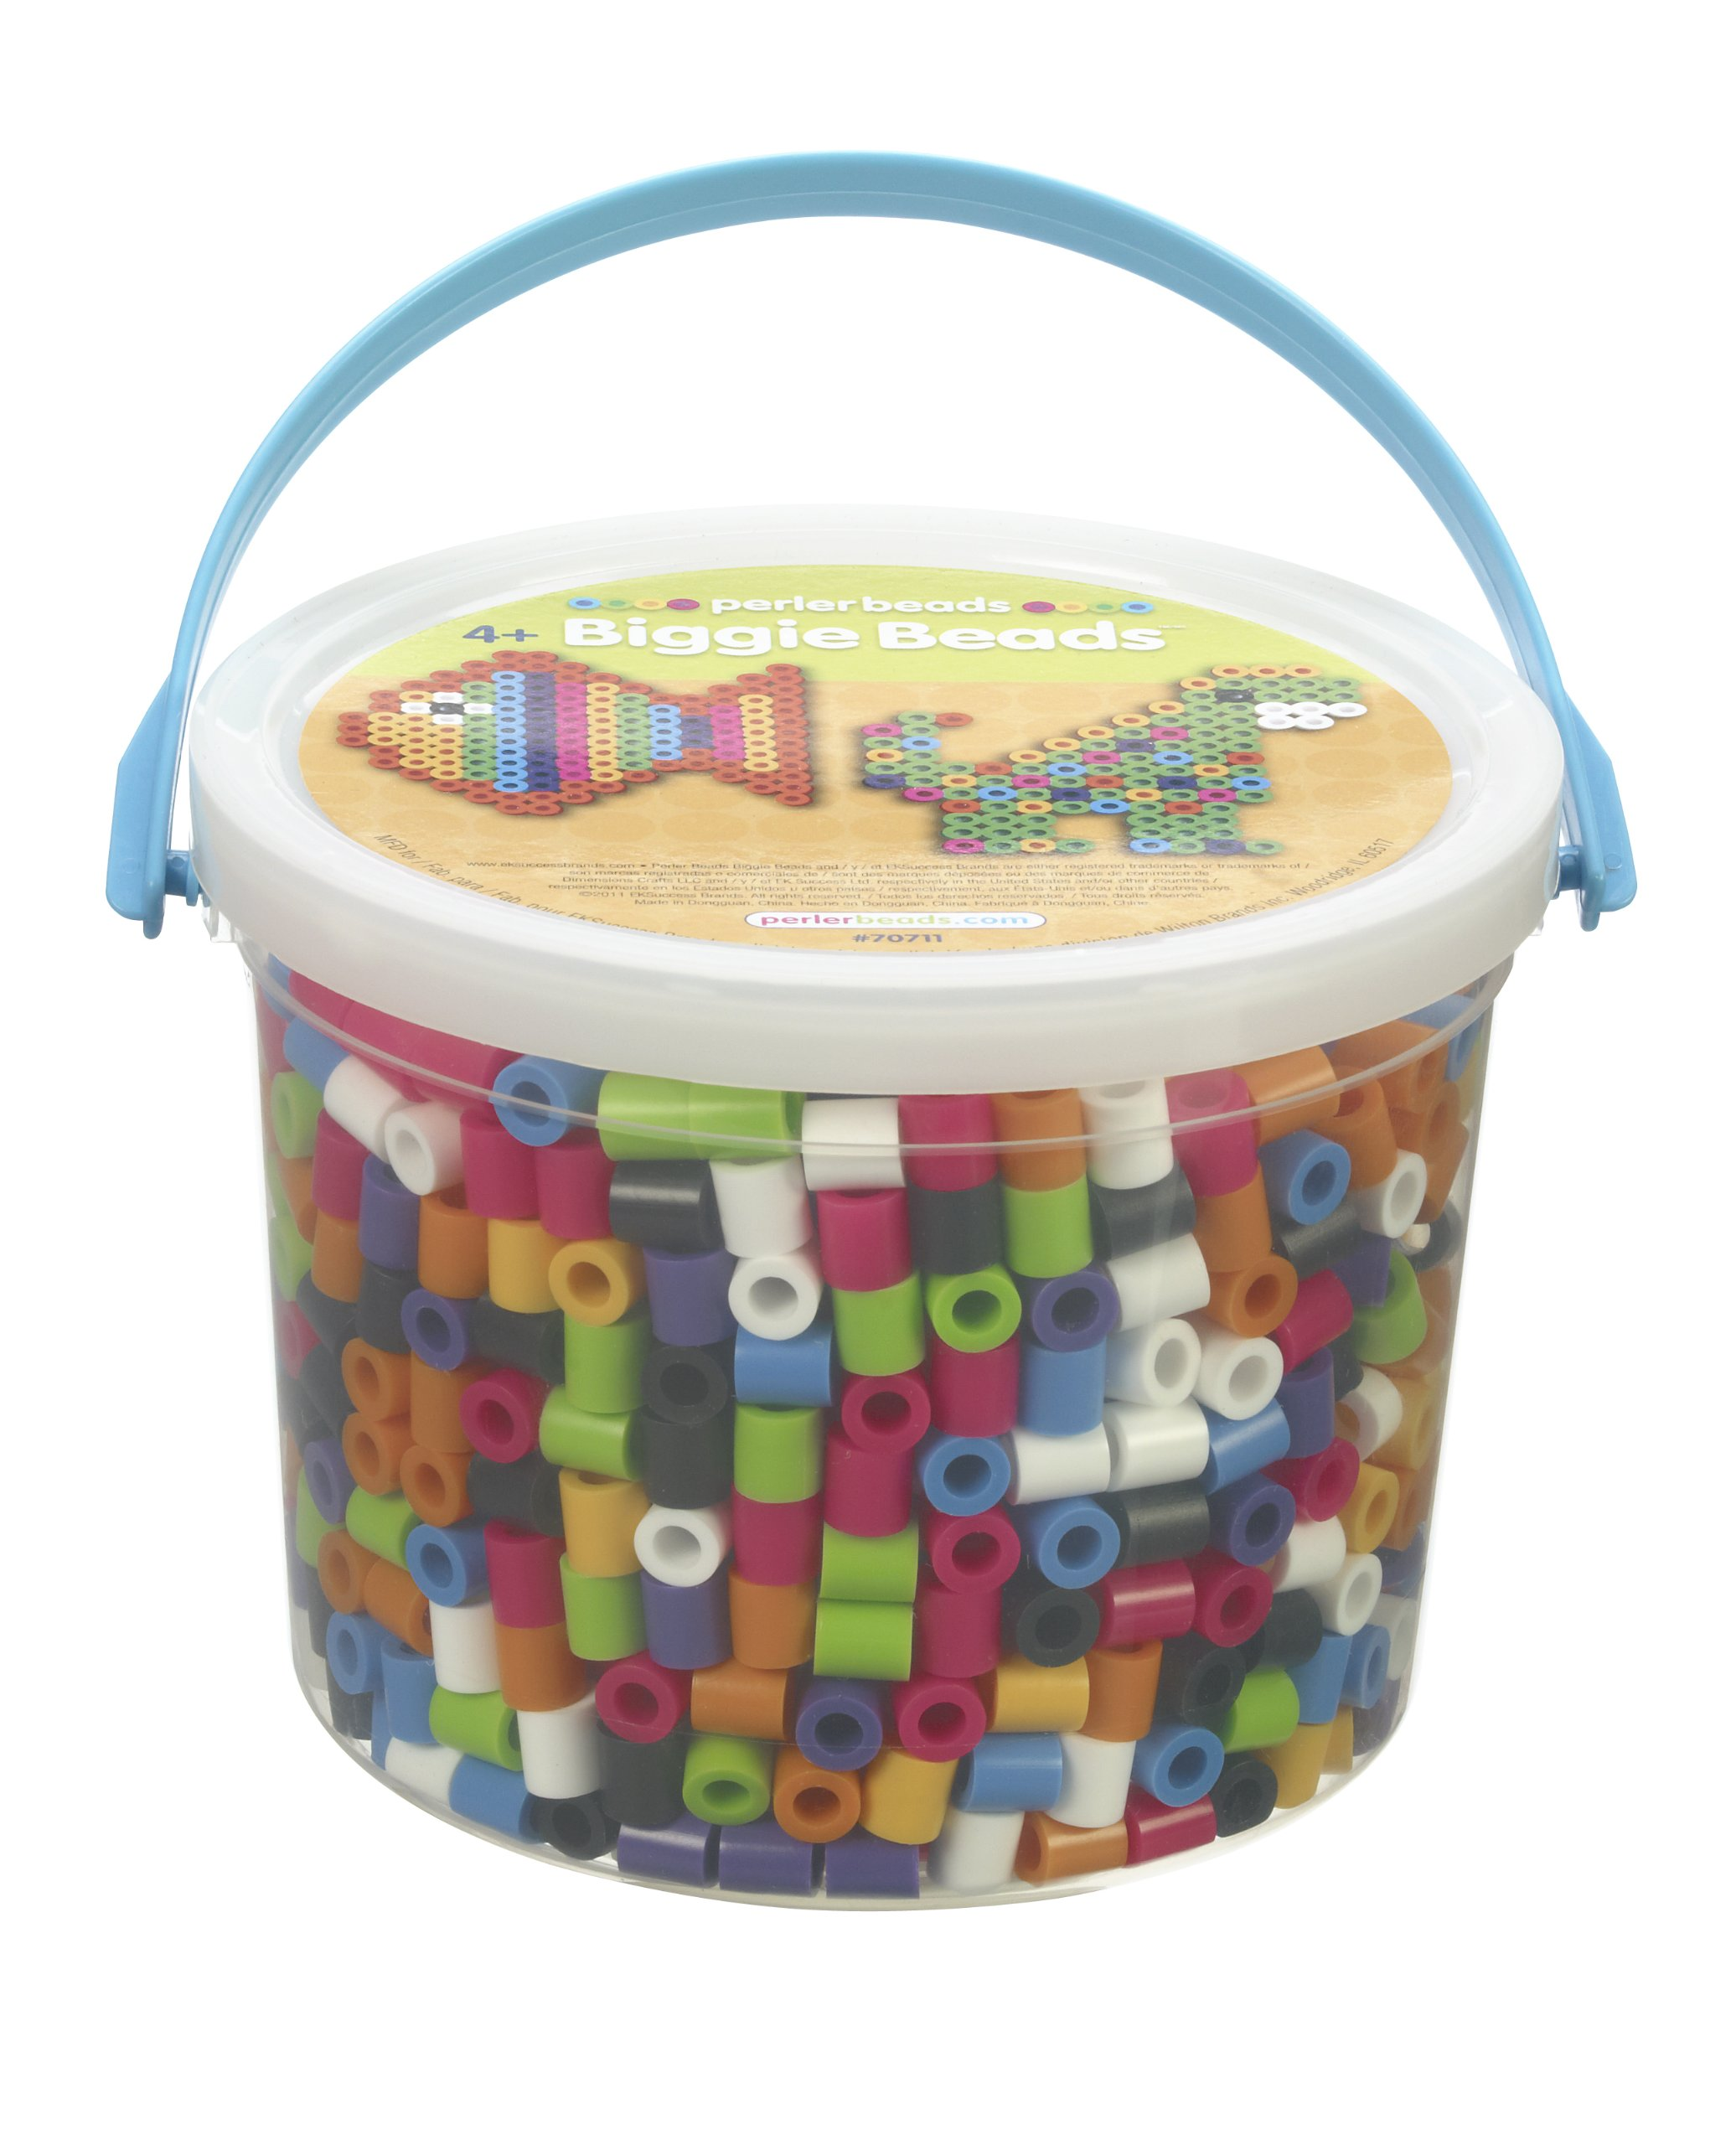 Perler Beads Biggie Beads Fuse Bead Activity Kit for Kids Crafts, 1200 pcs by Perler